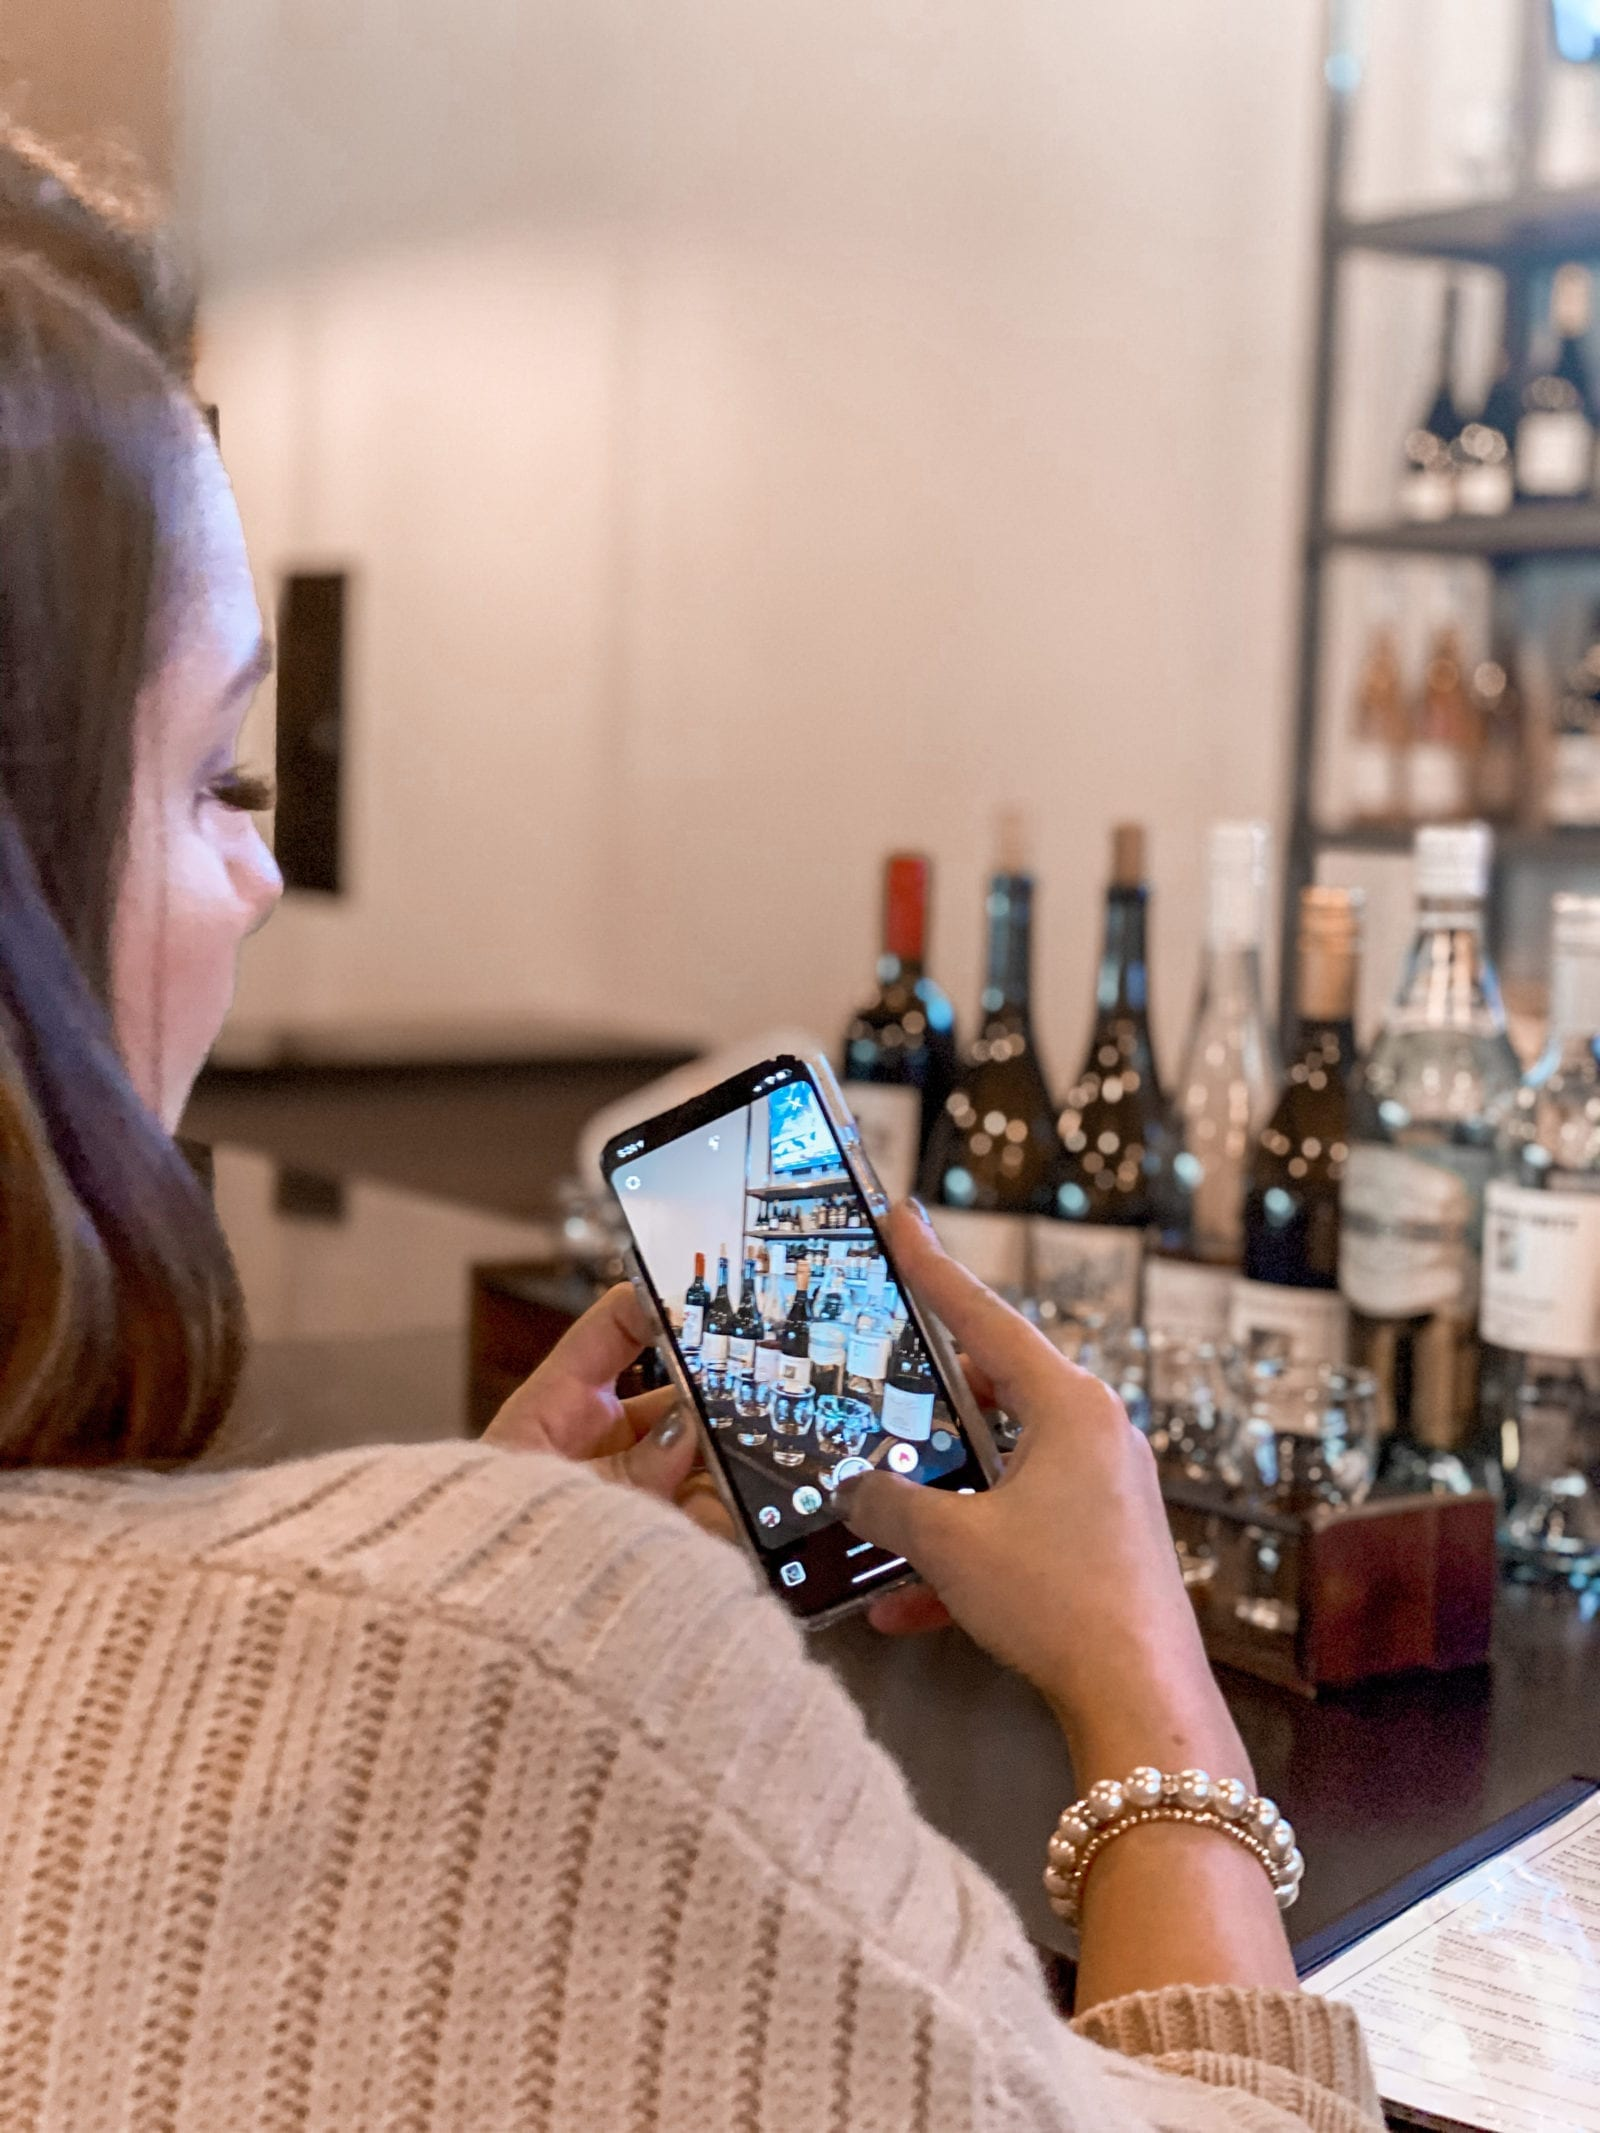 In this photo, Adaleta Avdic is taking a photo of the wine spread at Hop Street Lounge.